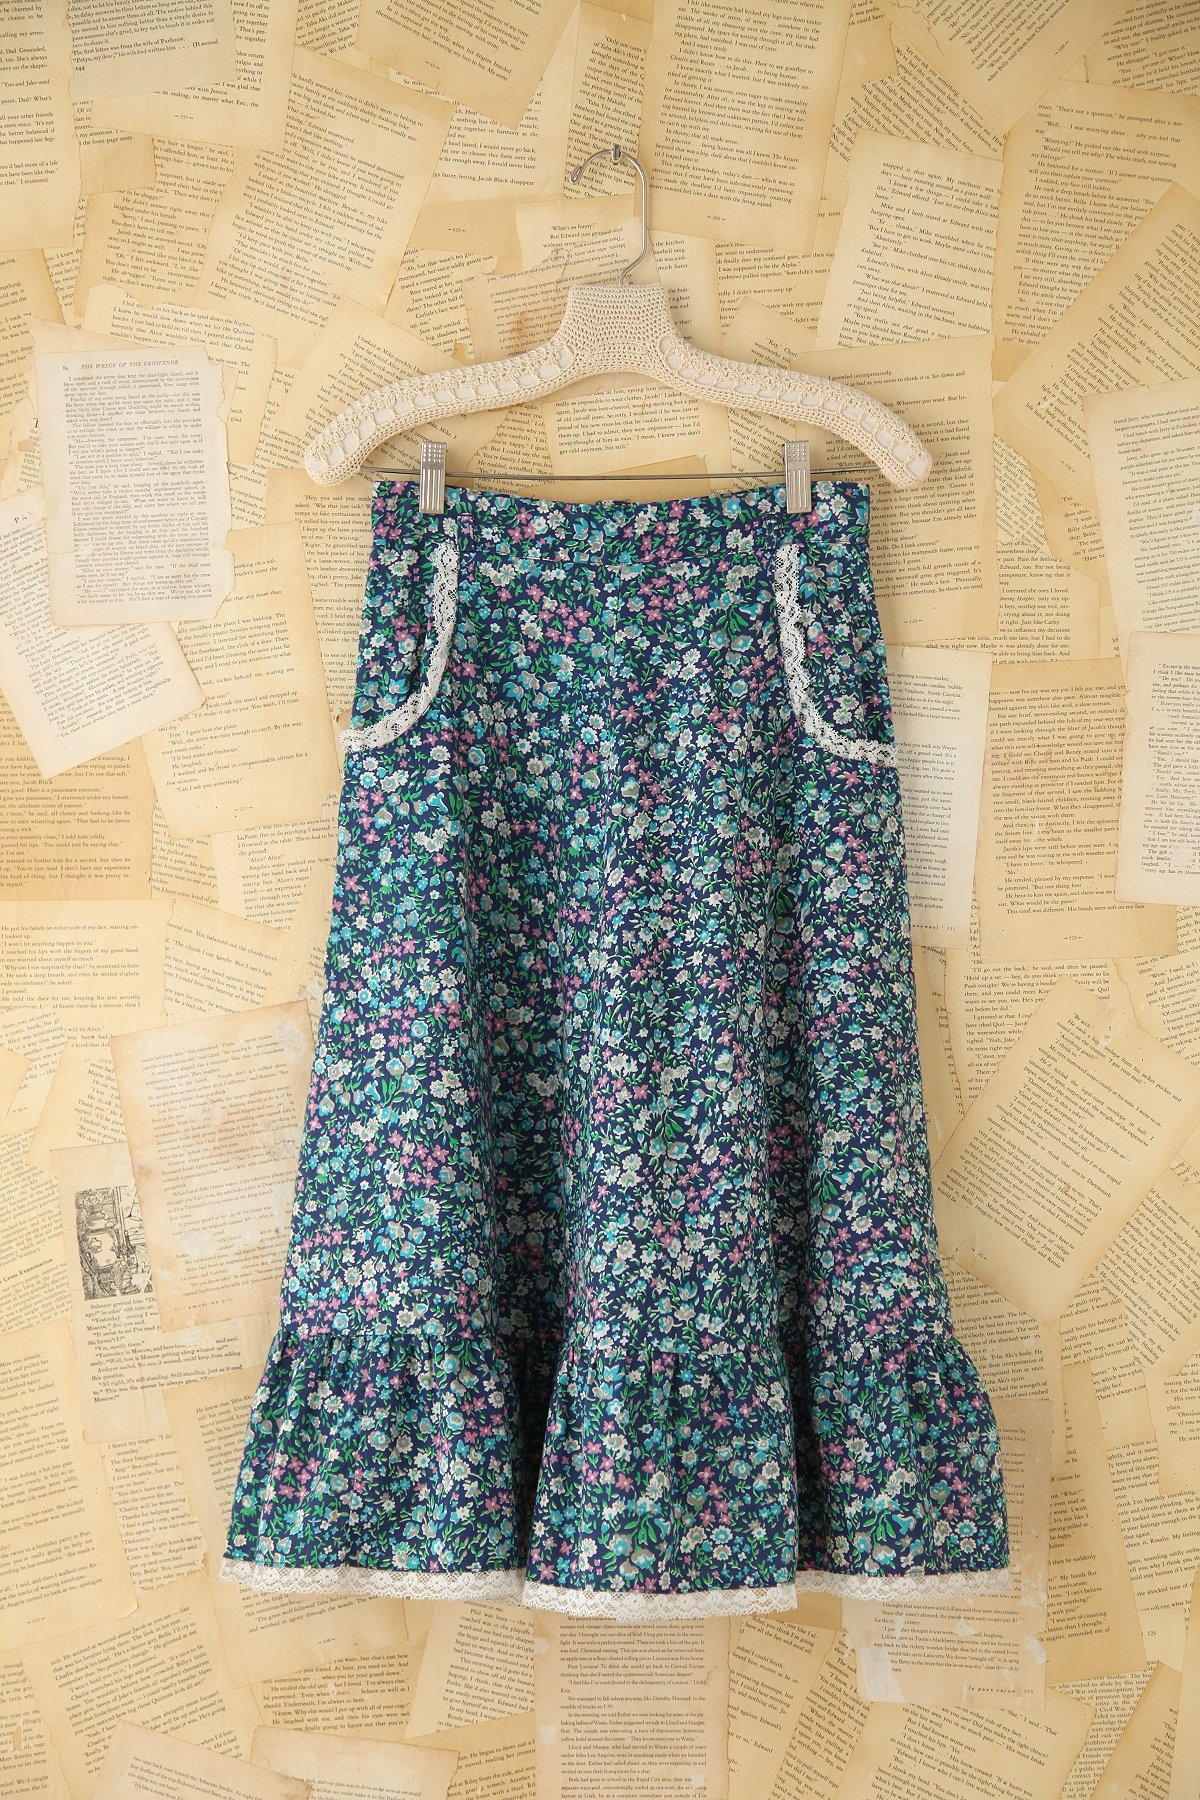 Vintage Floral Skirt With Pockets